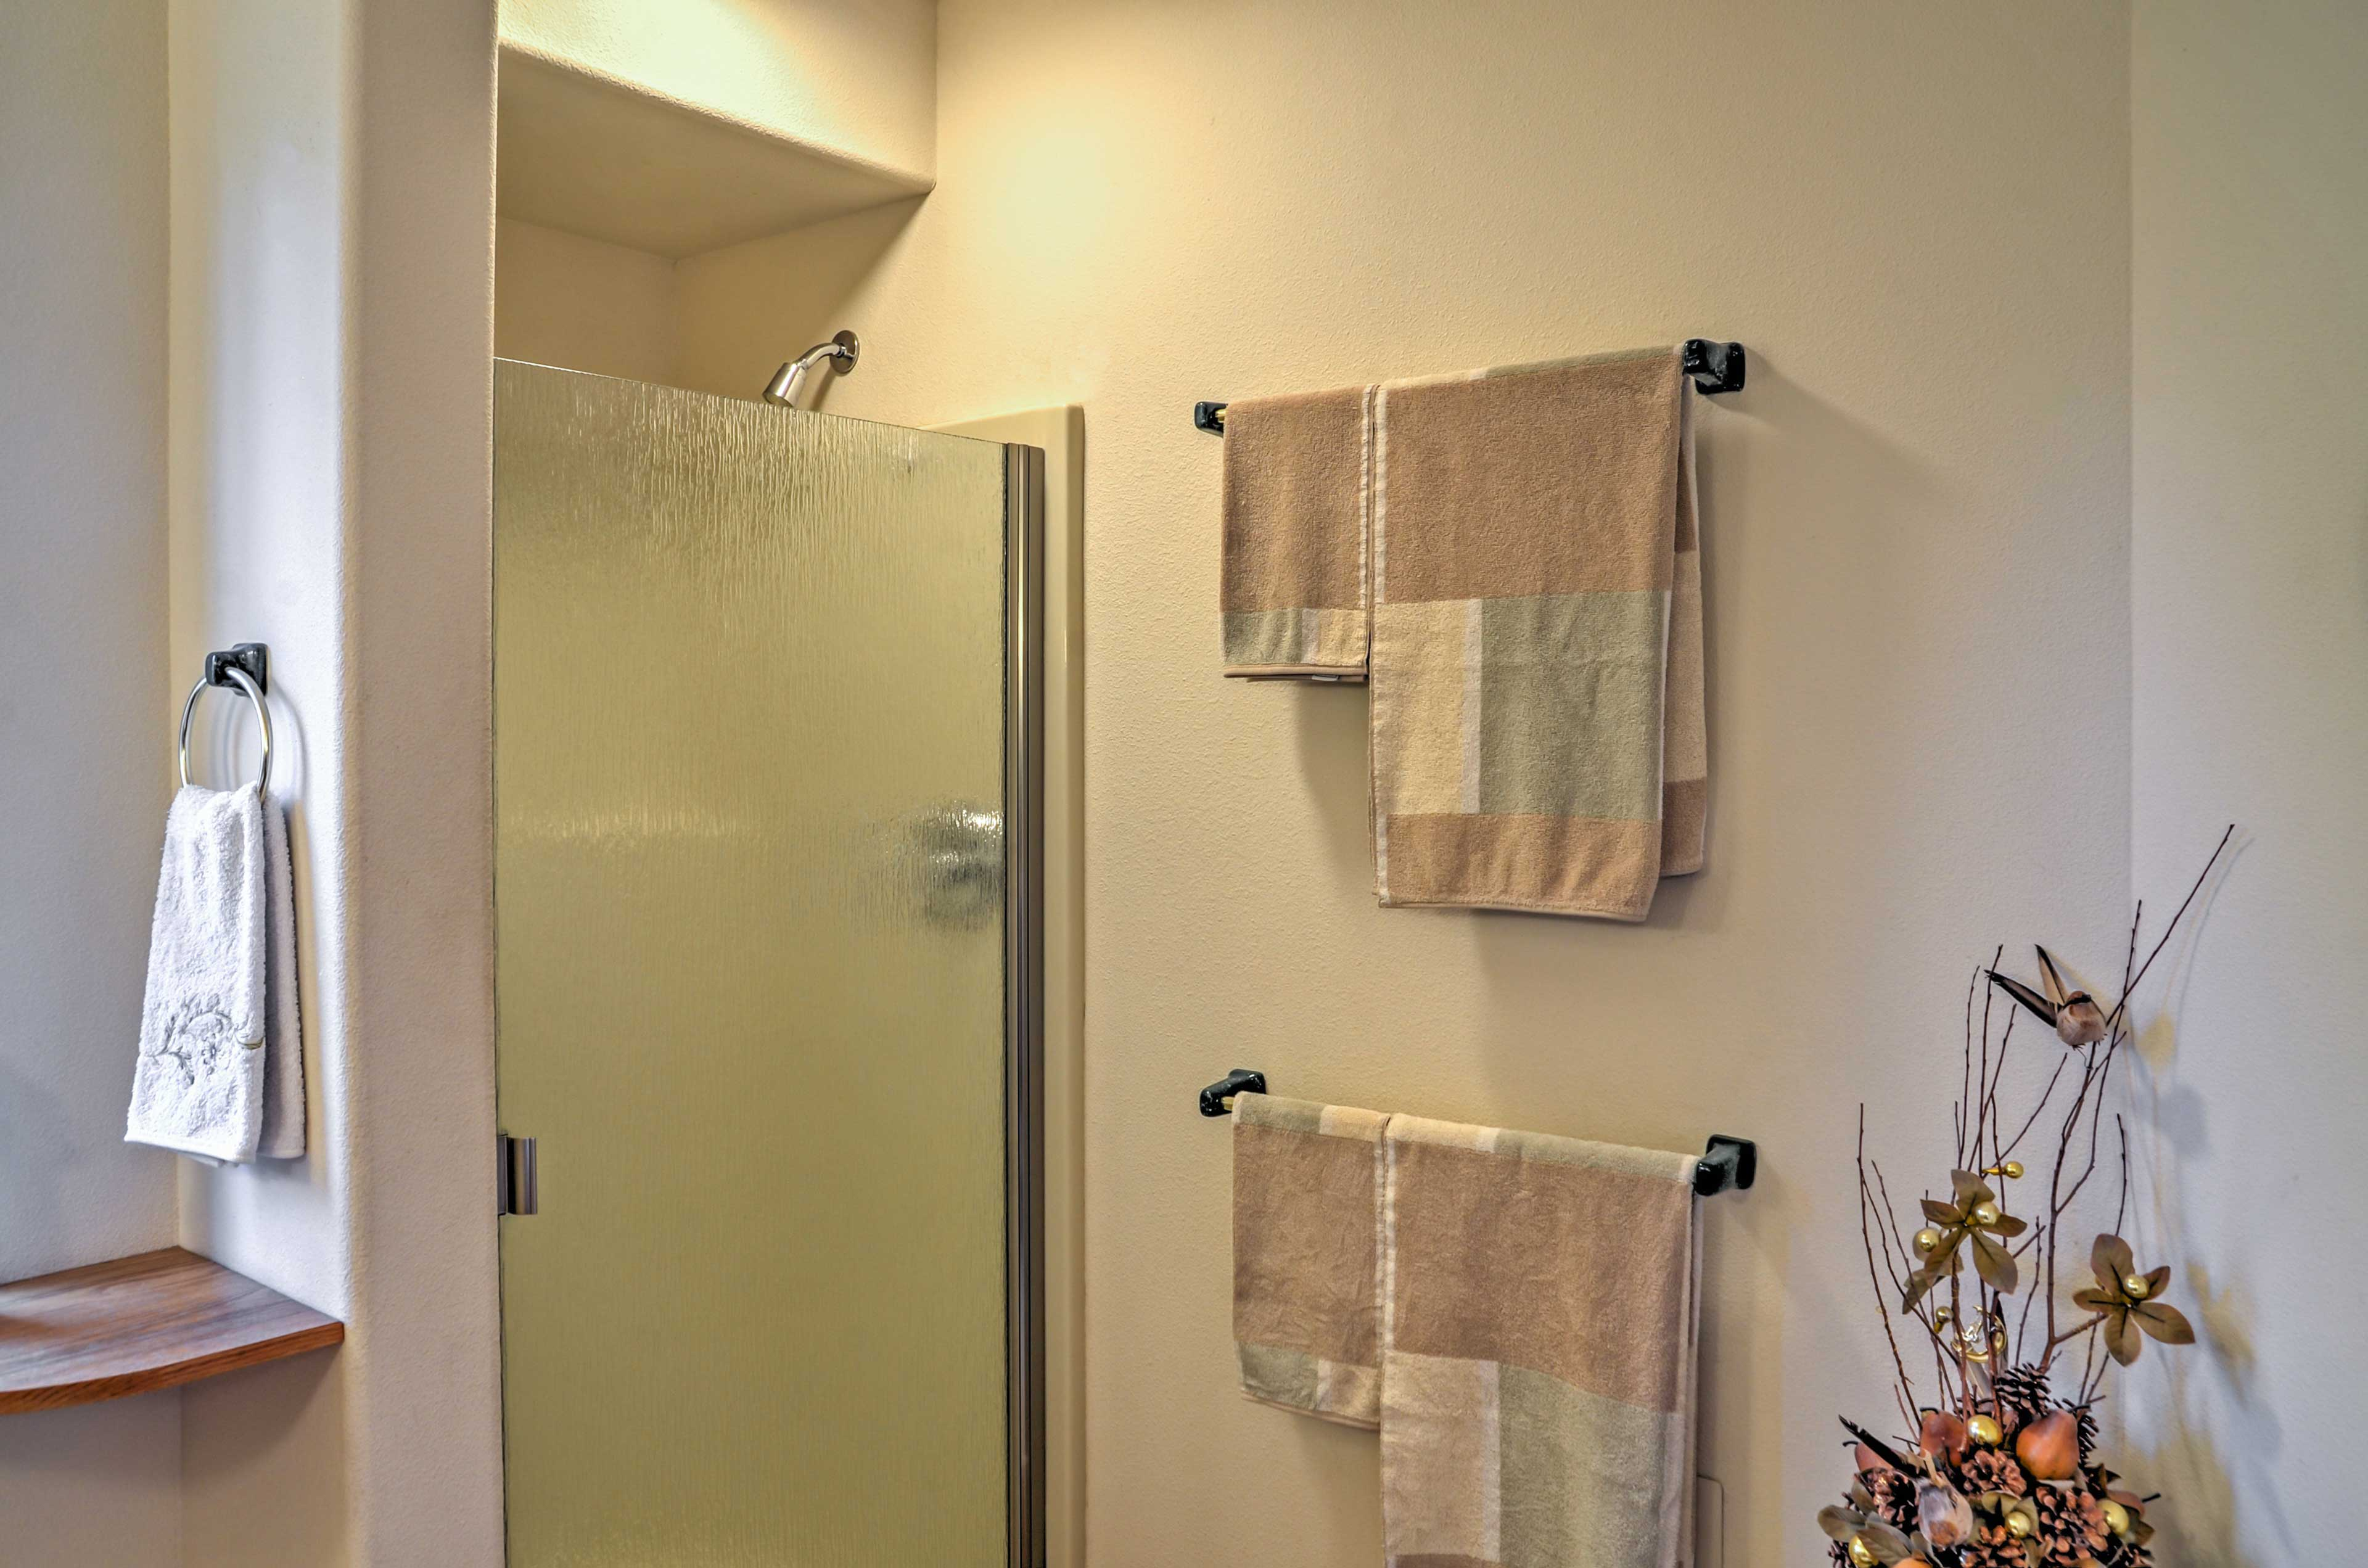 After your outdoor activities, rinse off in the walk-in shower.